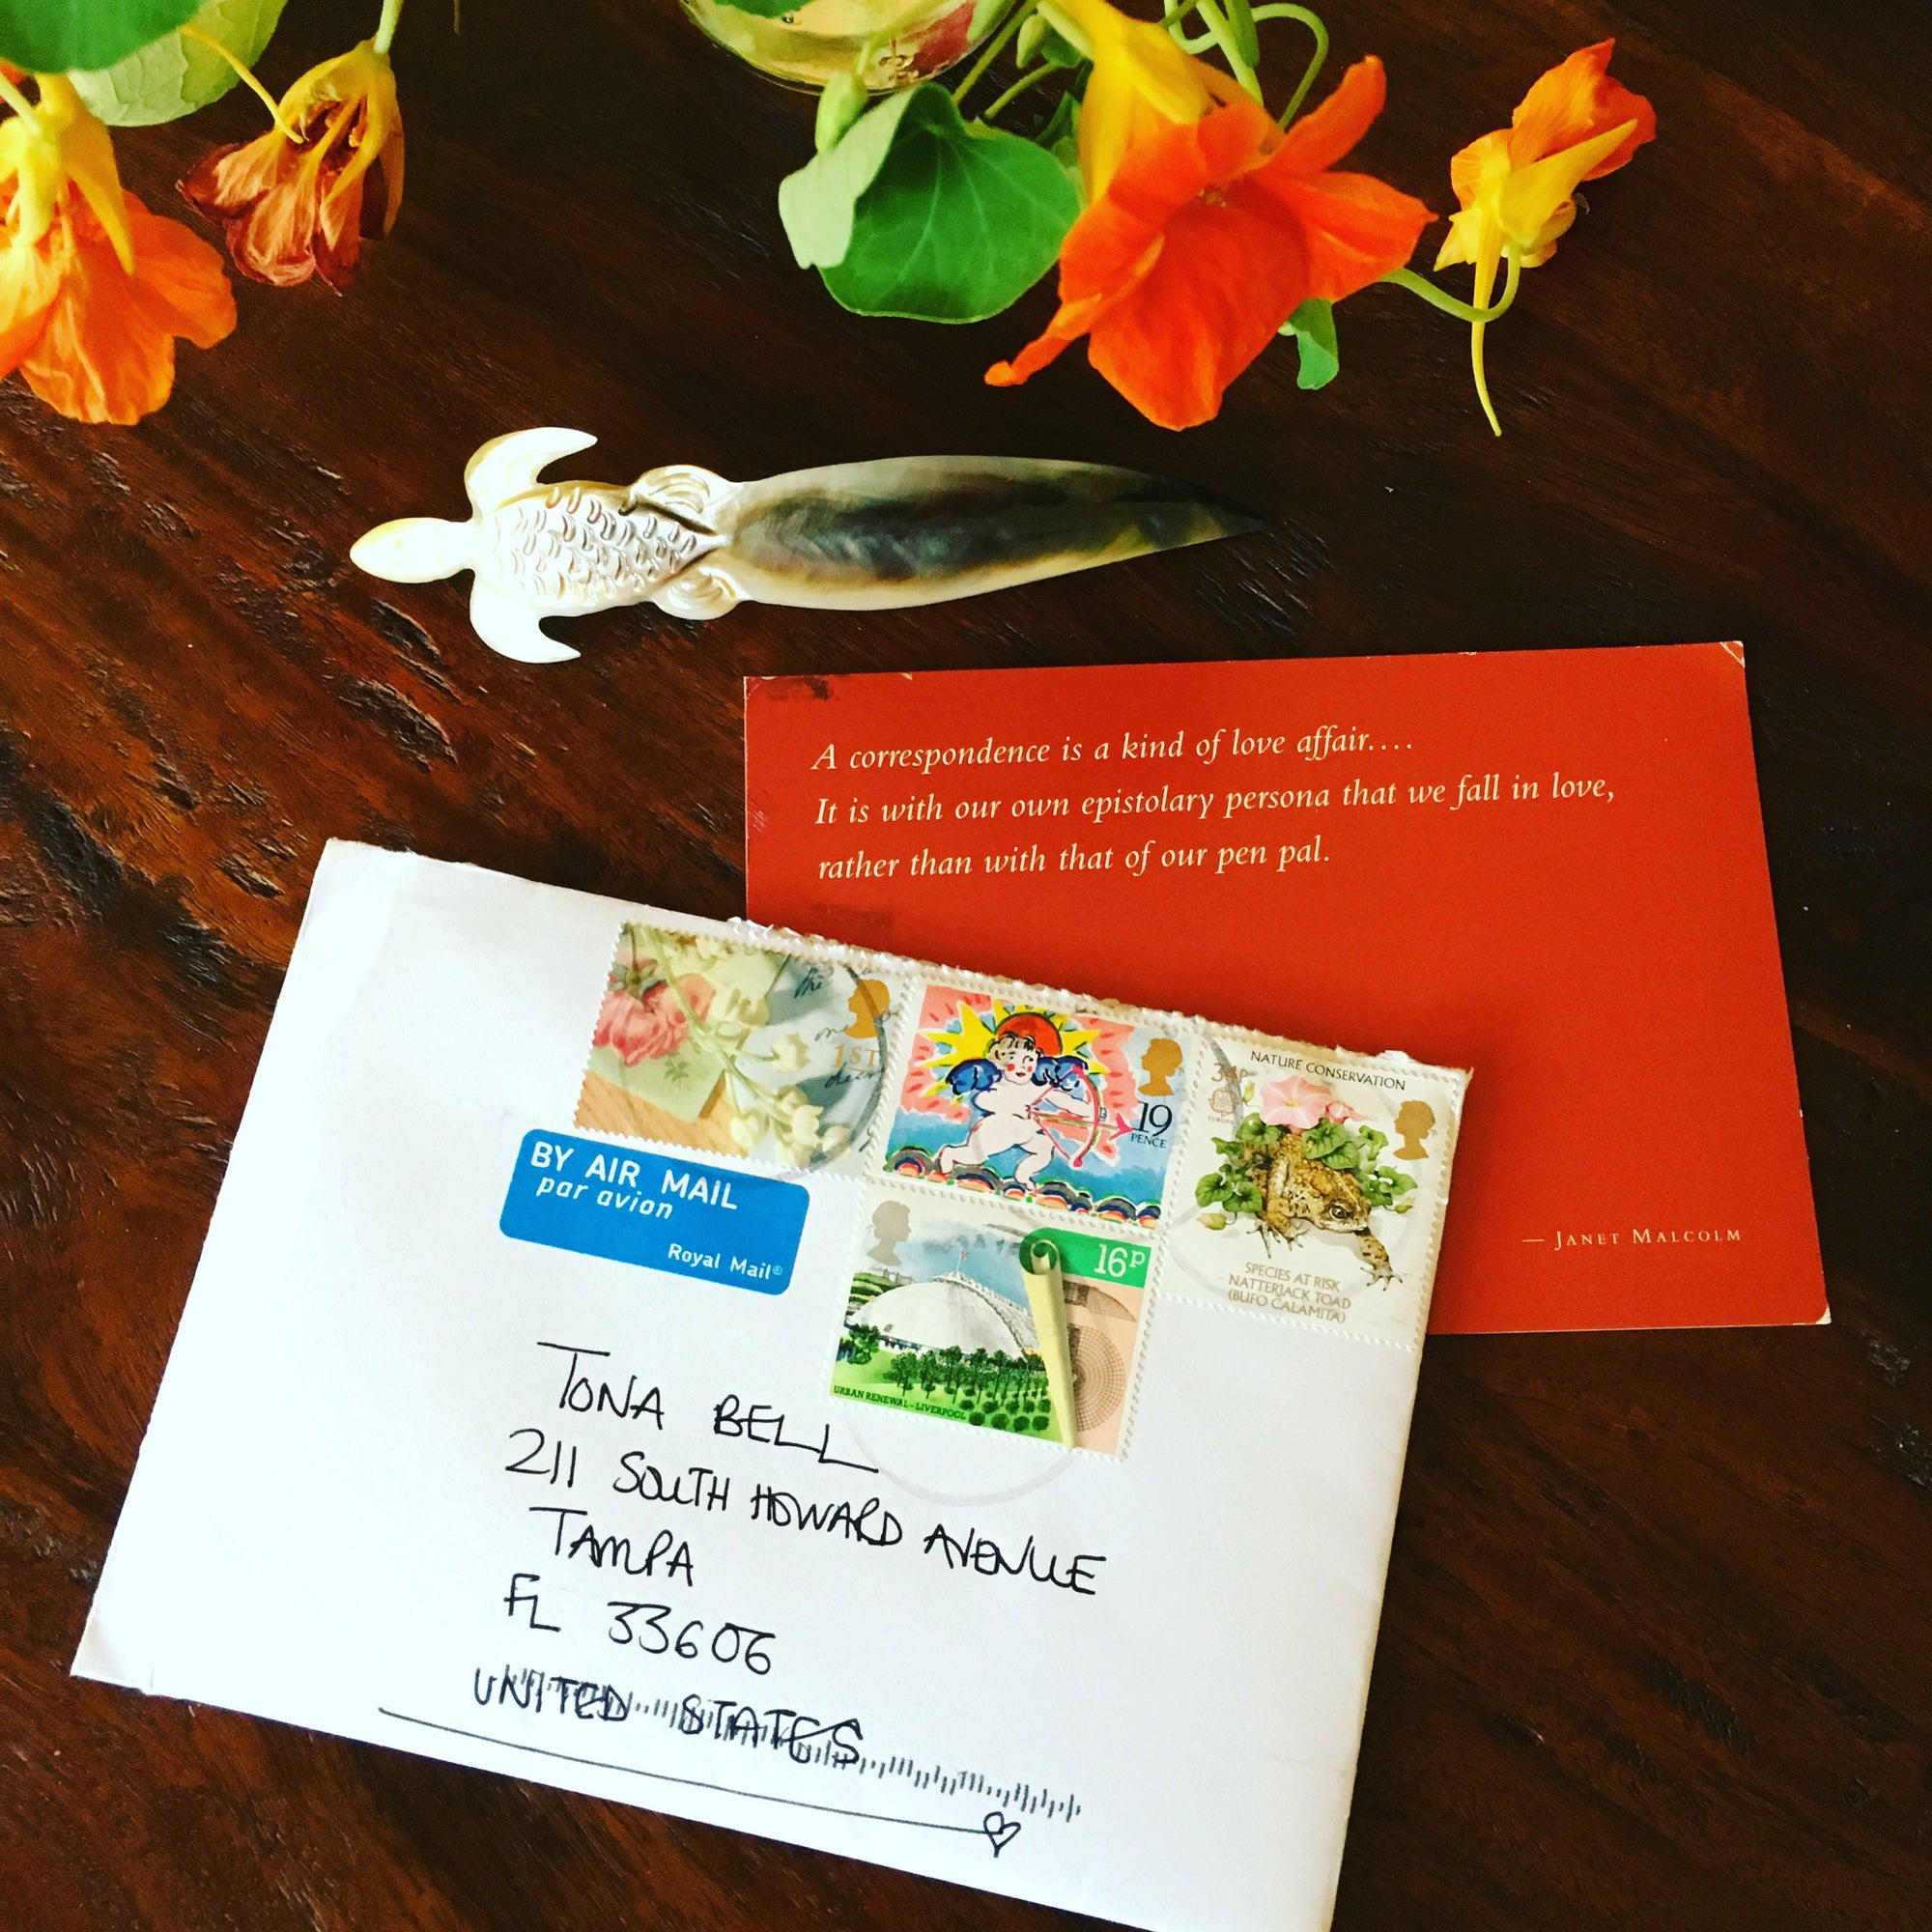 My 30 Cards & Letters In 30 Days: What I Learned to Keep In Touch More